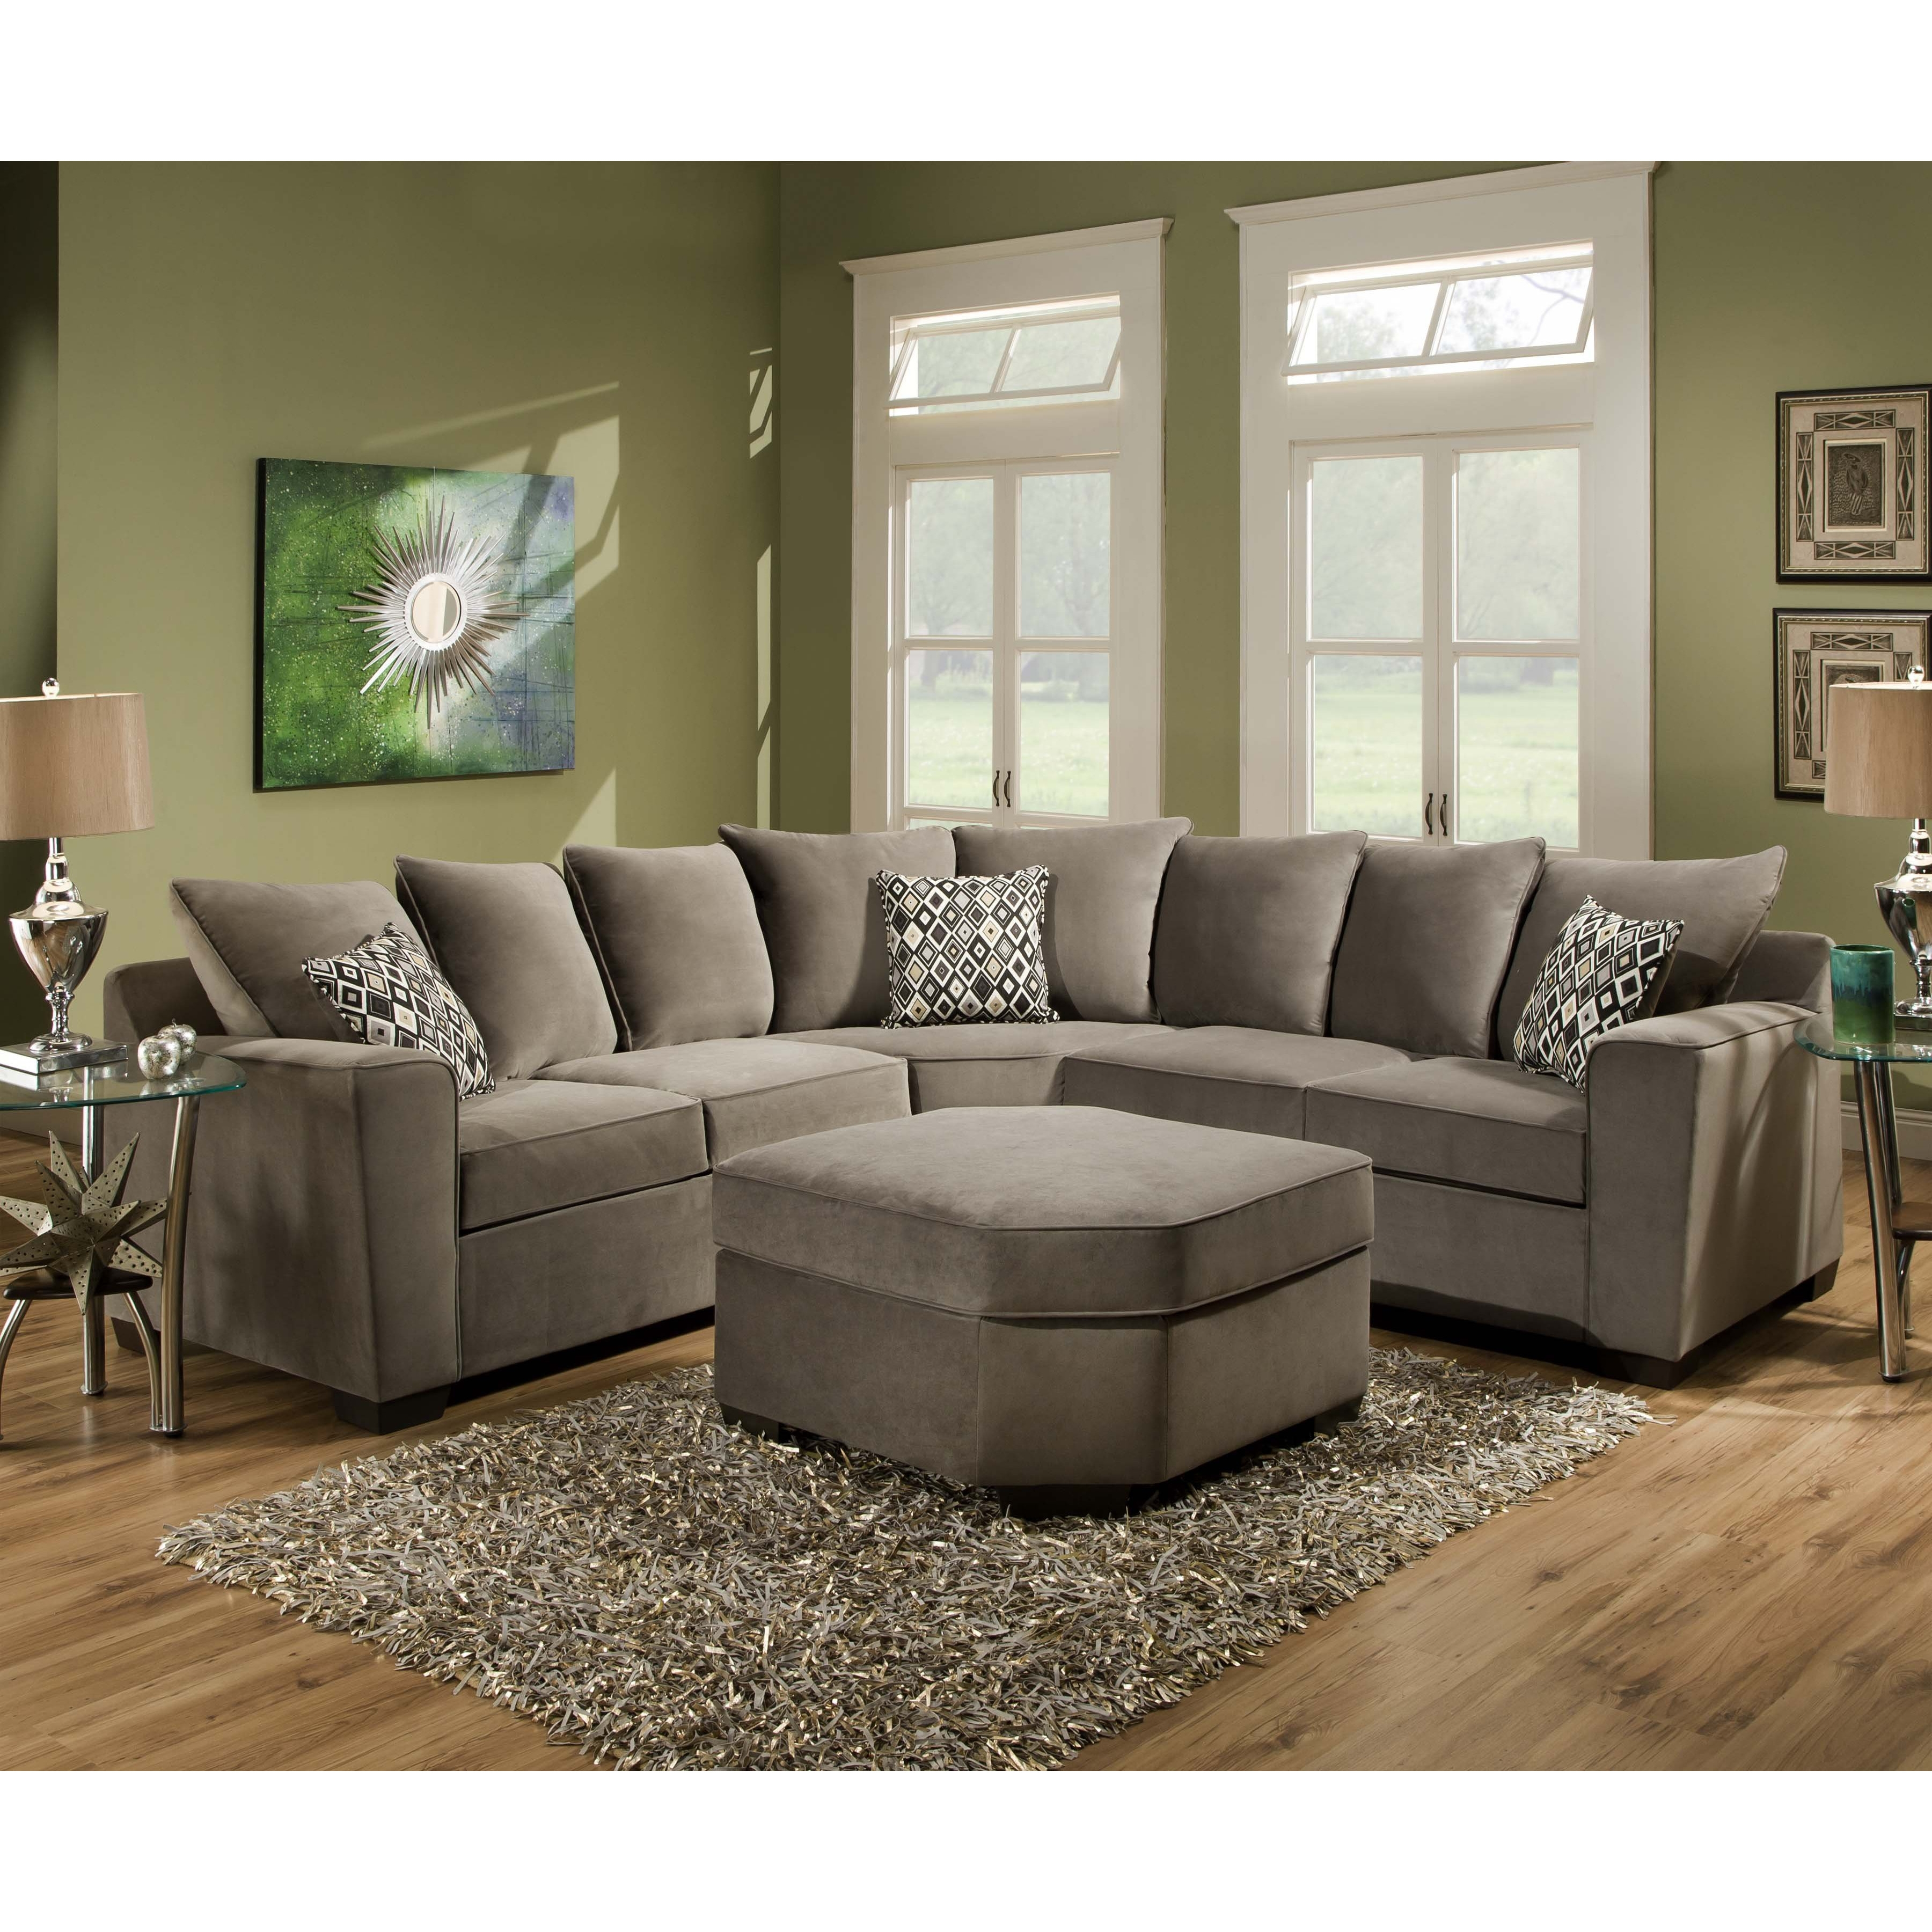 15 Curved Sectional Sofa With Recliner  Sofa Ideas